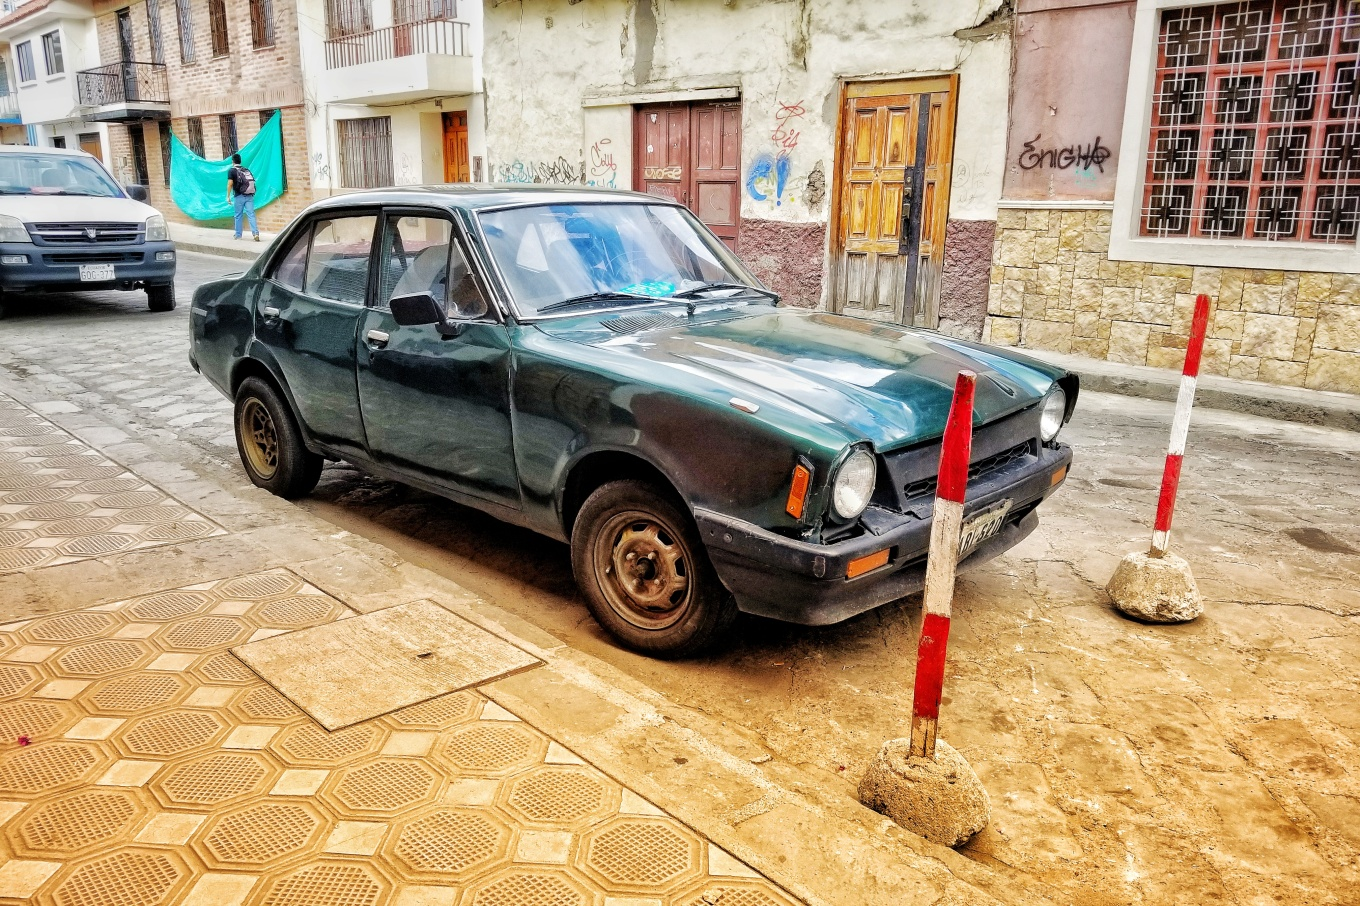 Car on Street in Cuenca, Ecuador